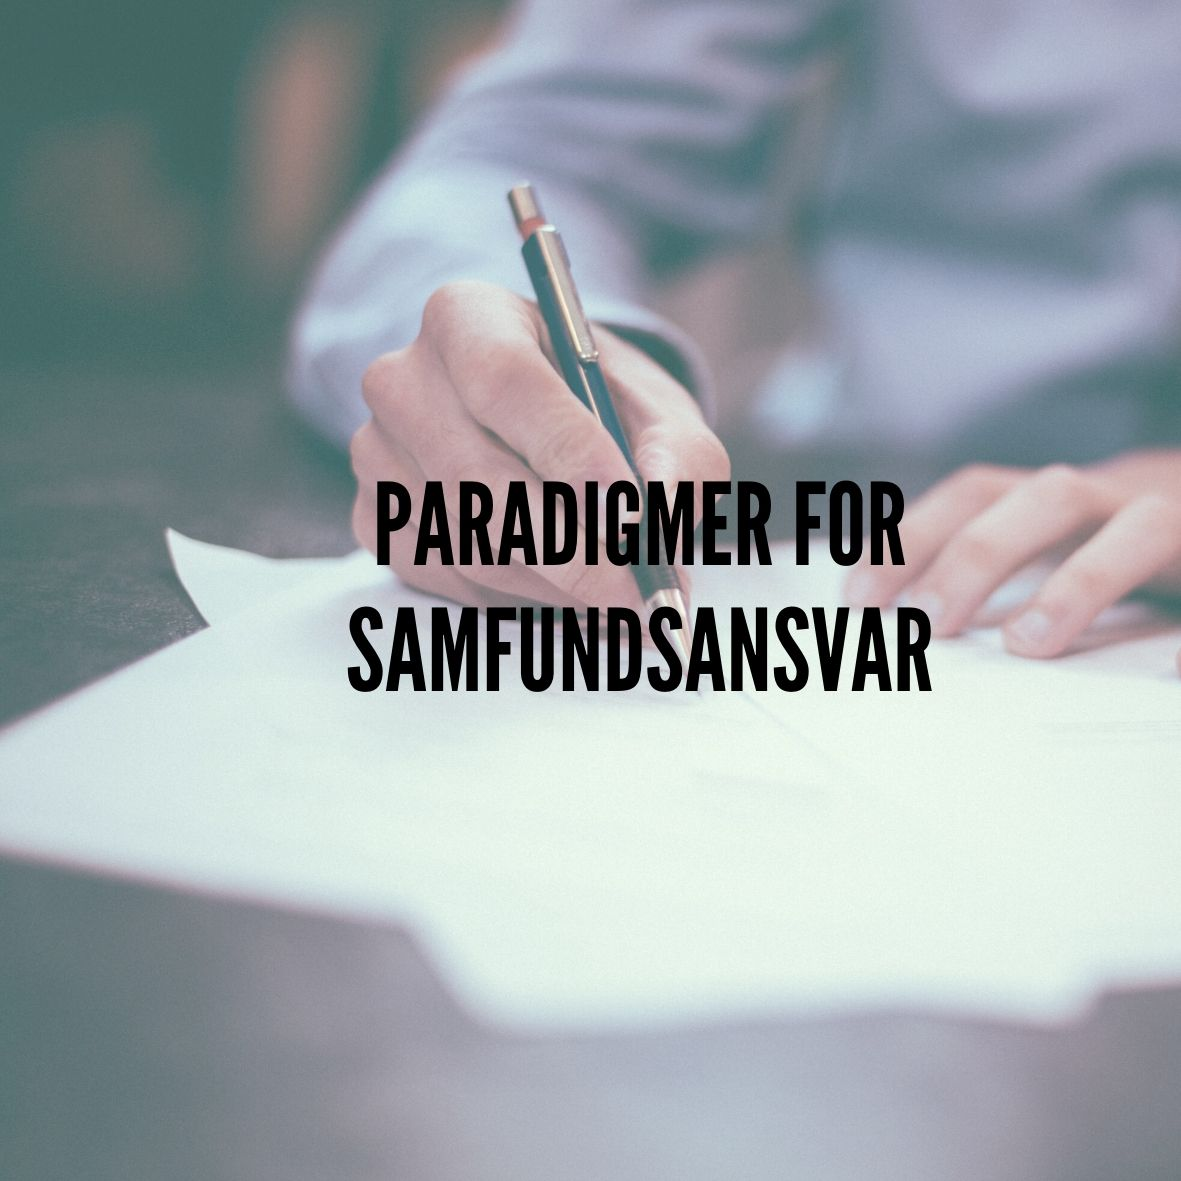 PARADIGMER FOR SAMFANSVAR